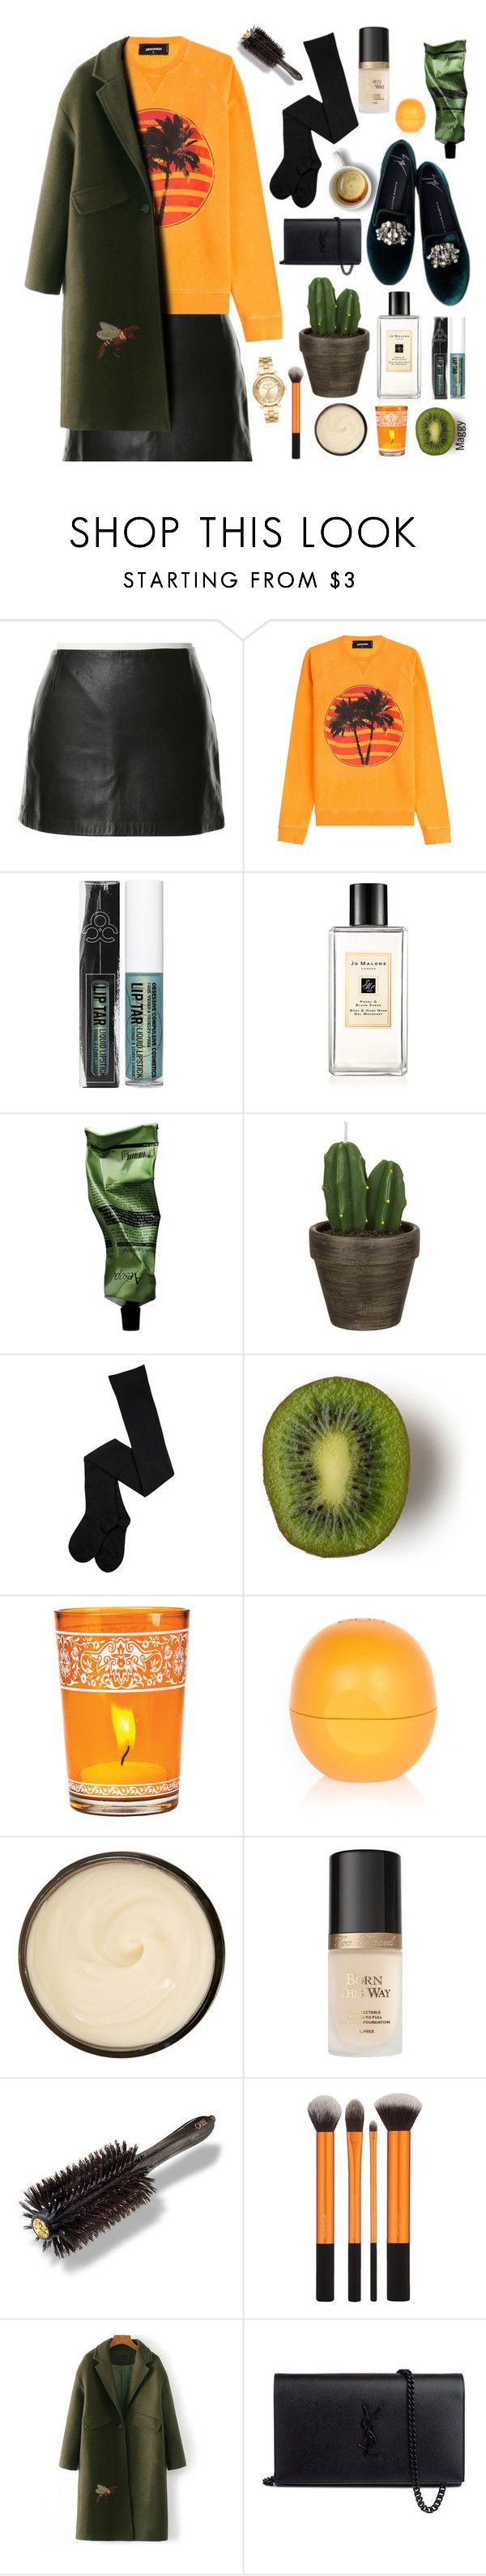 """""""Green Coat"""" by ana-mag ❤ liked on Polyvore featuring Zimmermann, Dsquared2, Giuseppe Zanotti, Obsessive Compulsive Cosmetics, Jo Malone, Aesop, John Lewis, Cultural Intrigue, River Island and Christophe Robin"""